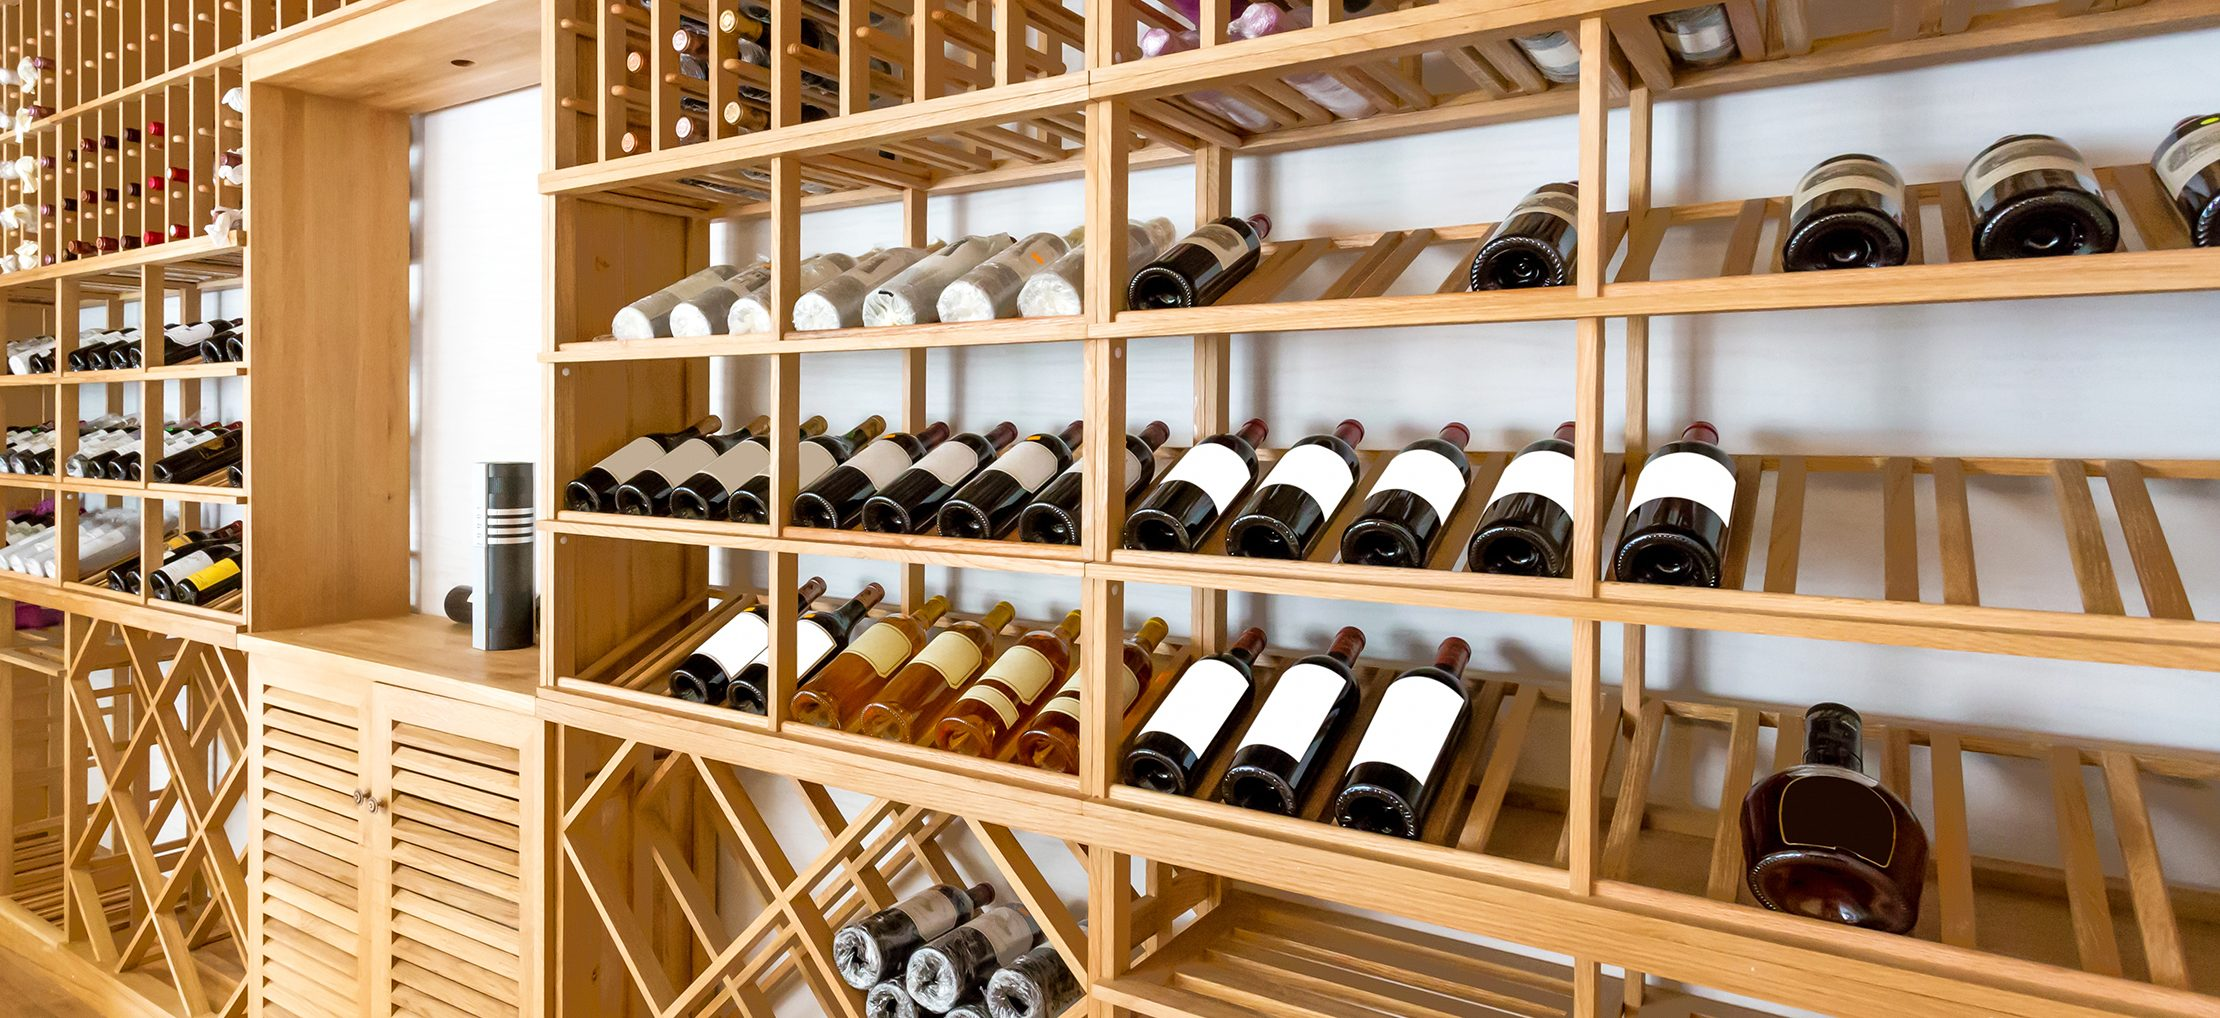 Recommendations for Wine Racks – Part 2